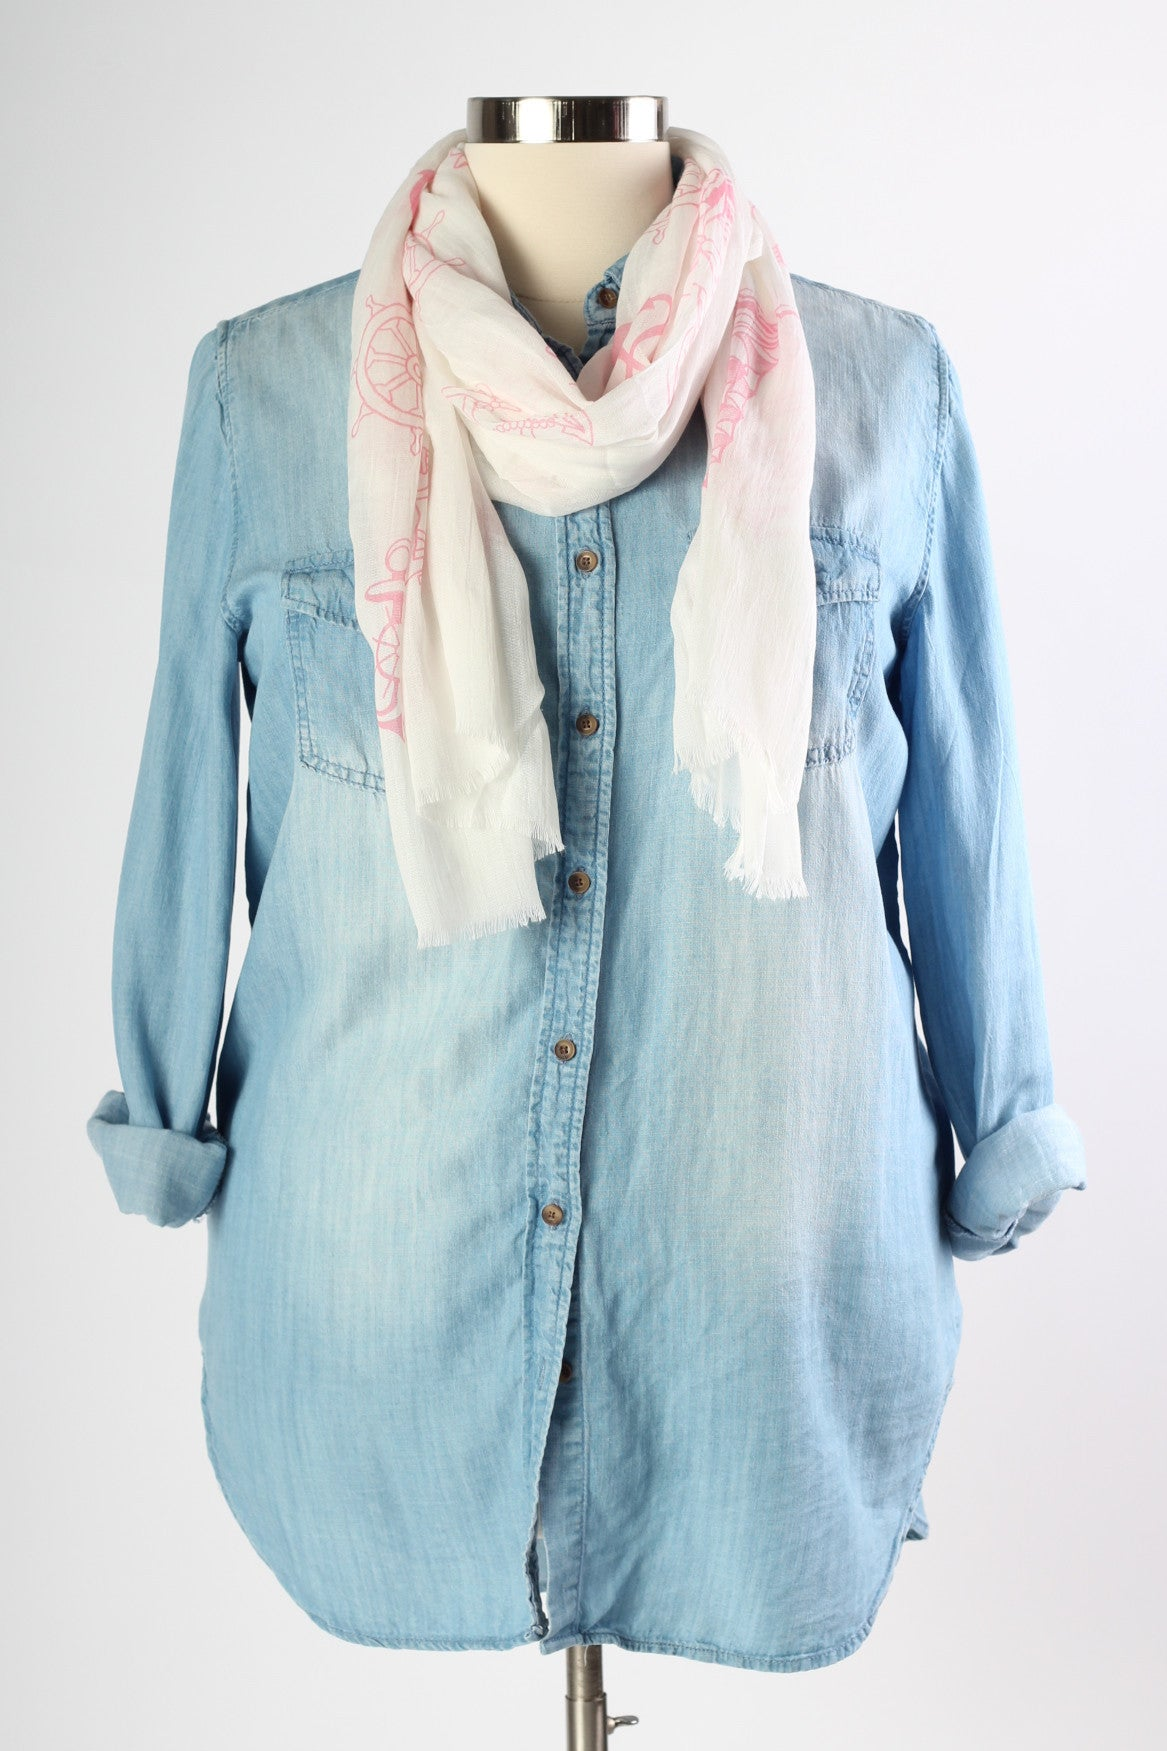 Anchors Away Scarf - Pink